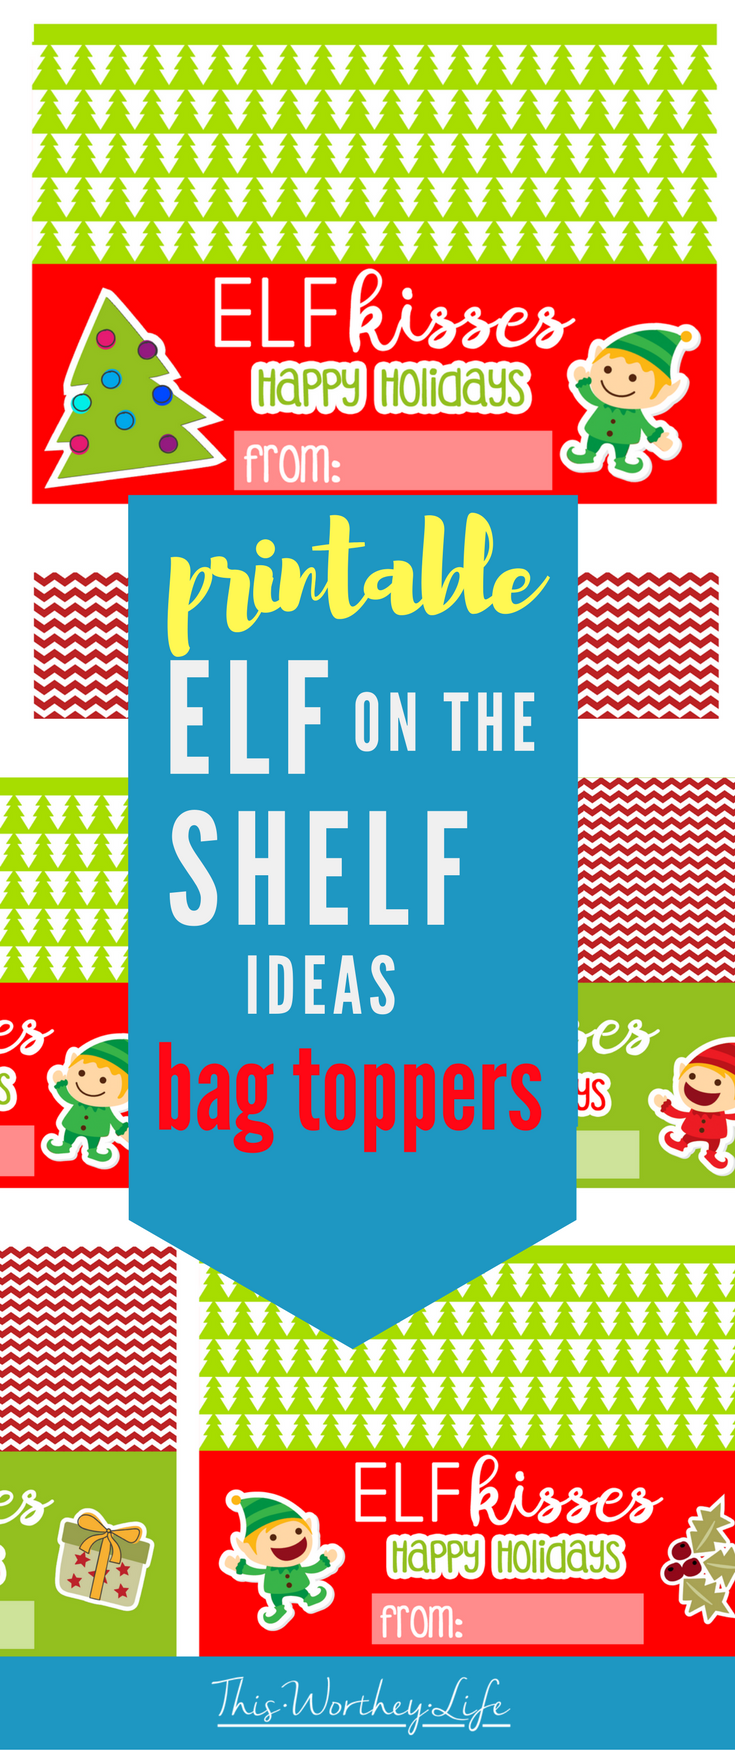 You can add these Elf On The Shelf printables to the top of any bag of treats to use for holiday parties at your kid's schools, or even favors for your own hosted party.